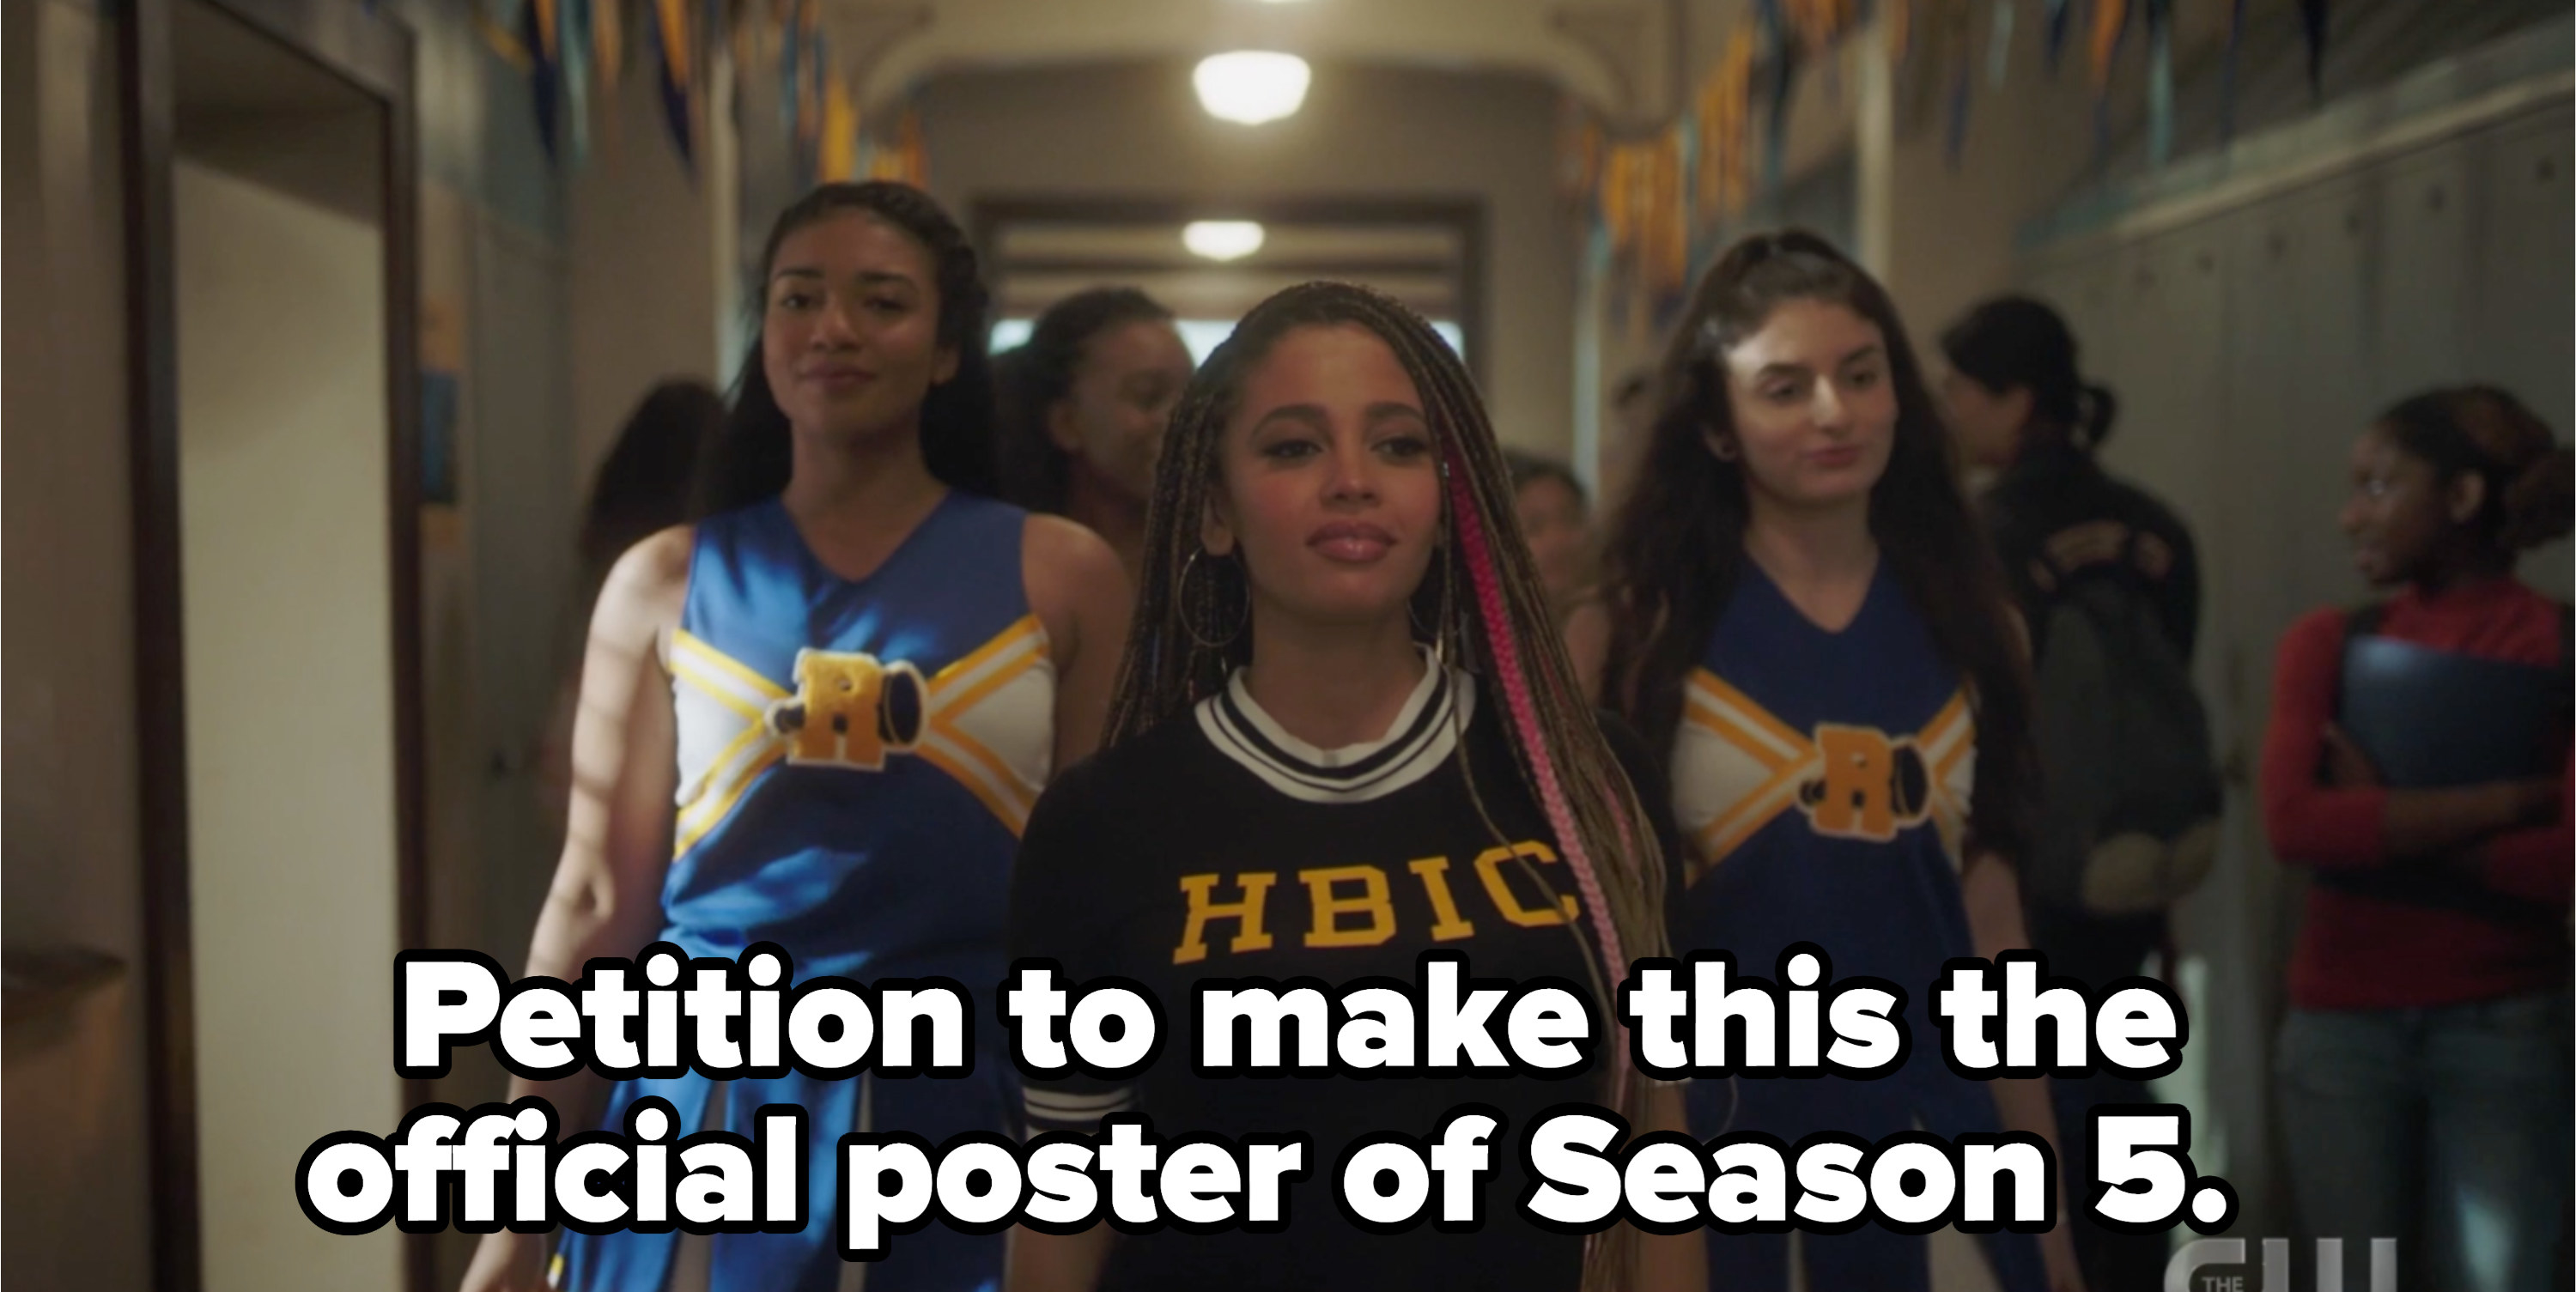 """Toni walking and wearing HBIC shirt and the river vixens behind her with the caption """"petition to make this the official poster of Season 5"""""""